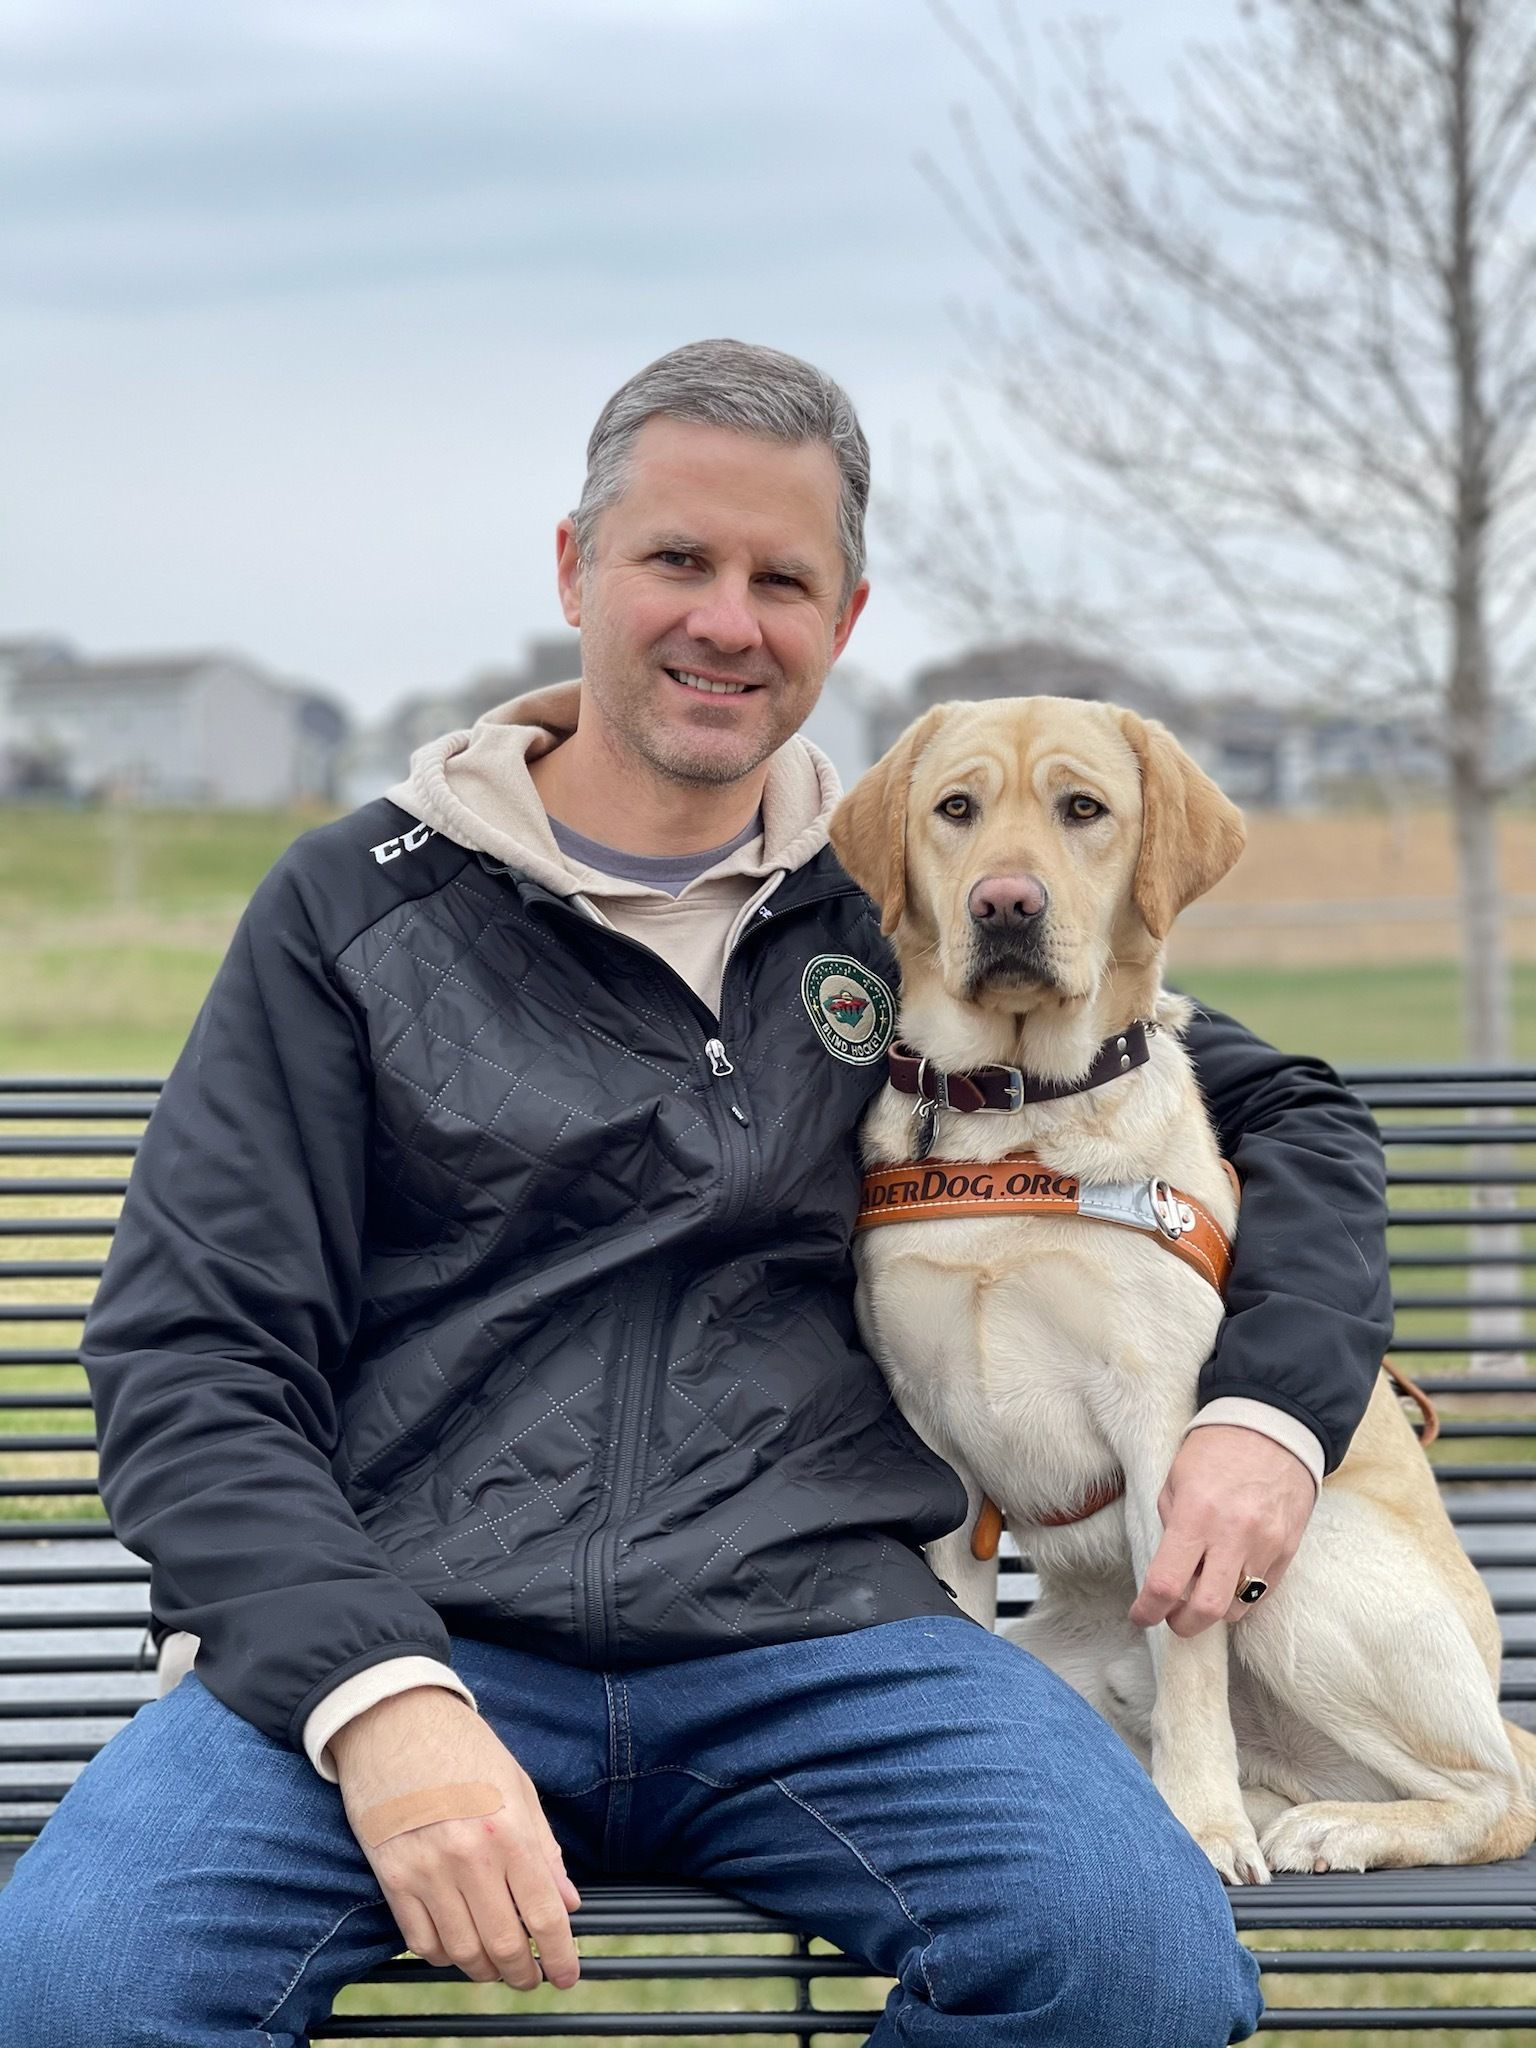 Book: Comets Landing- My First Guide Dog